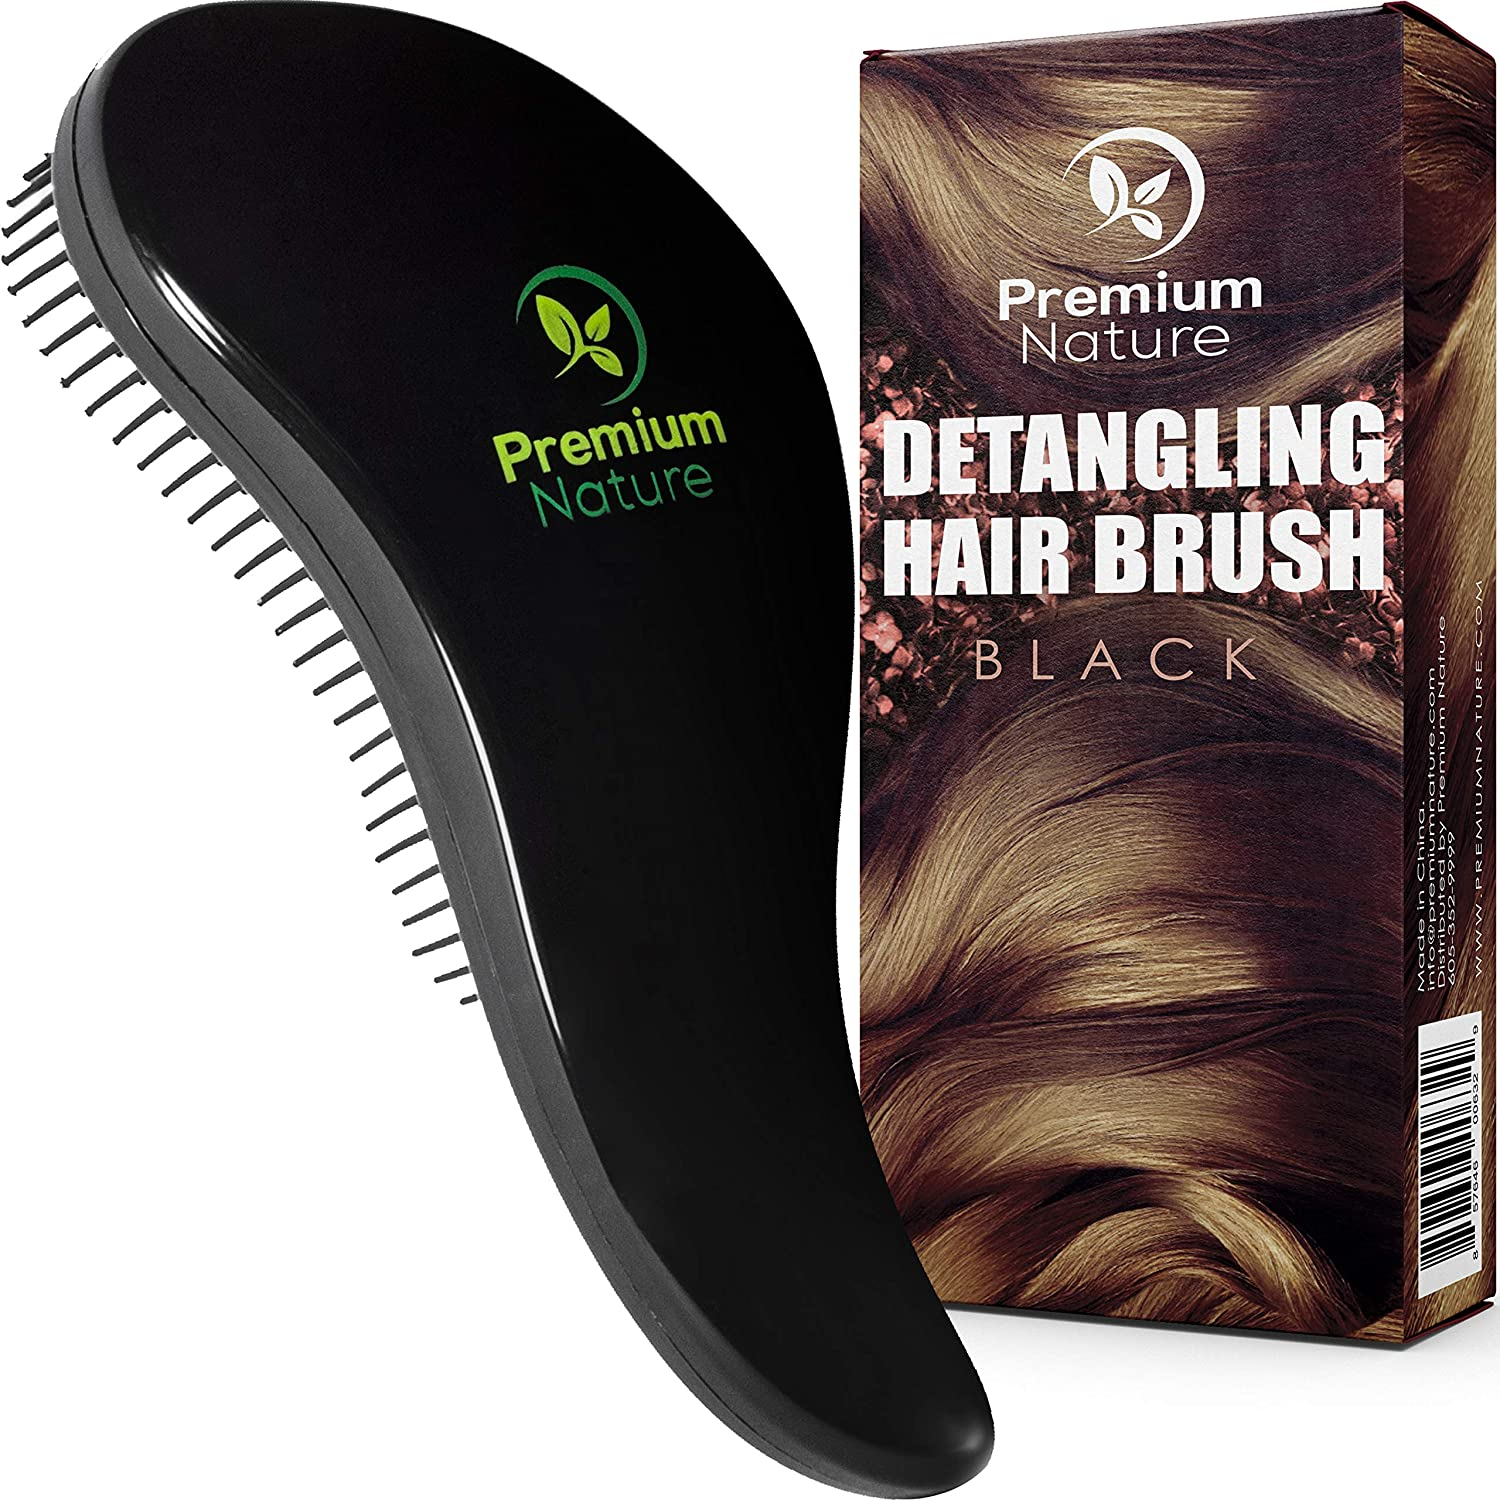 Detangling Hair Brush Best Detangler Comb - No Pain Detangler Brush For Curly Wavy Thick or Thin Hair - Premium Nature (Black)